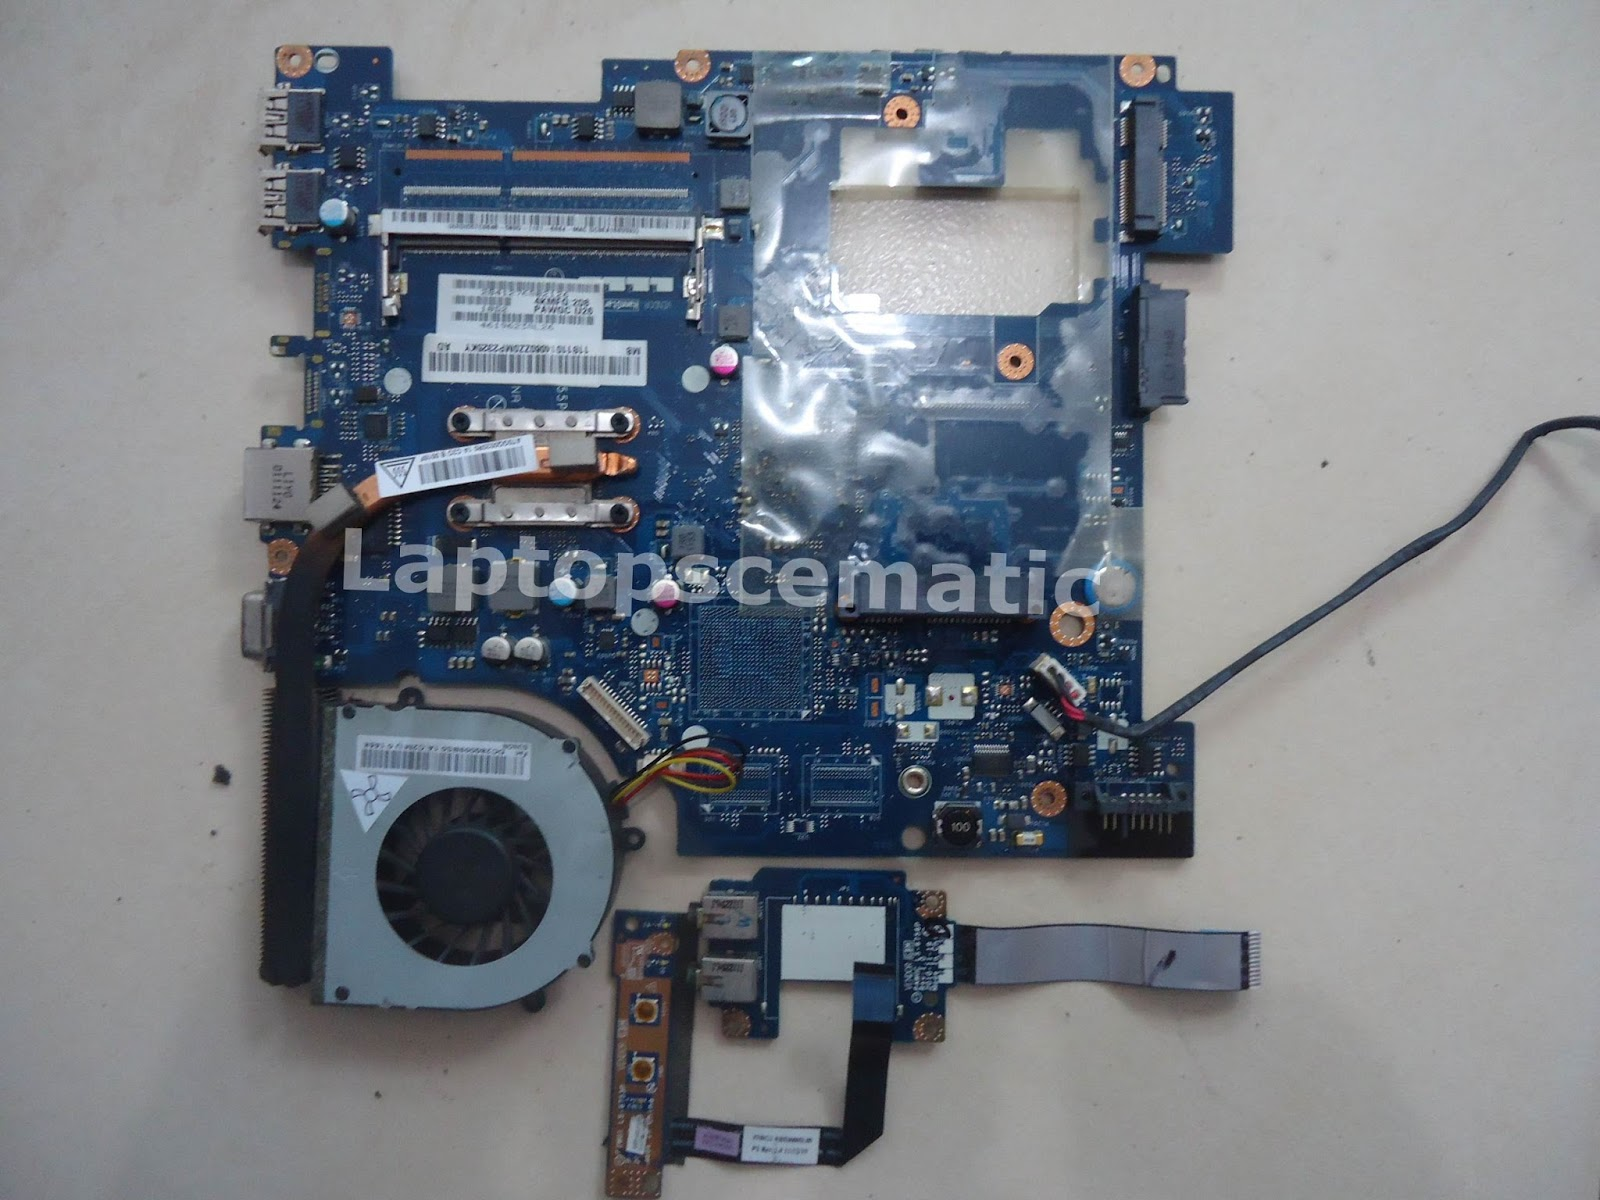 Pico Btx Motherboard Diagram Three Way Switch Wiring Power At Light Lenovo G475 Mainboard Code Pawgc La 6755p Rev